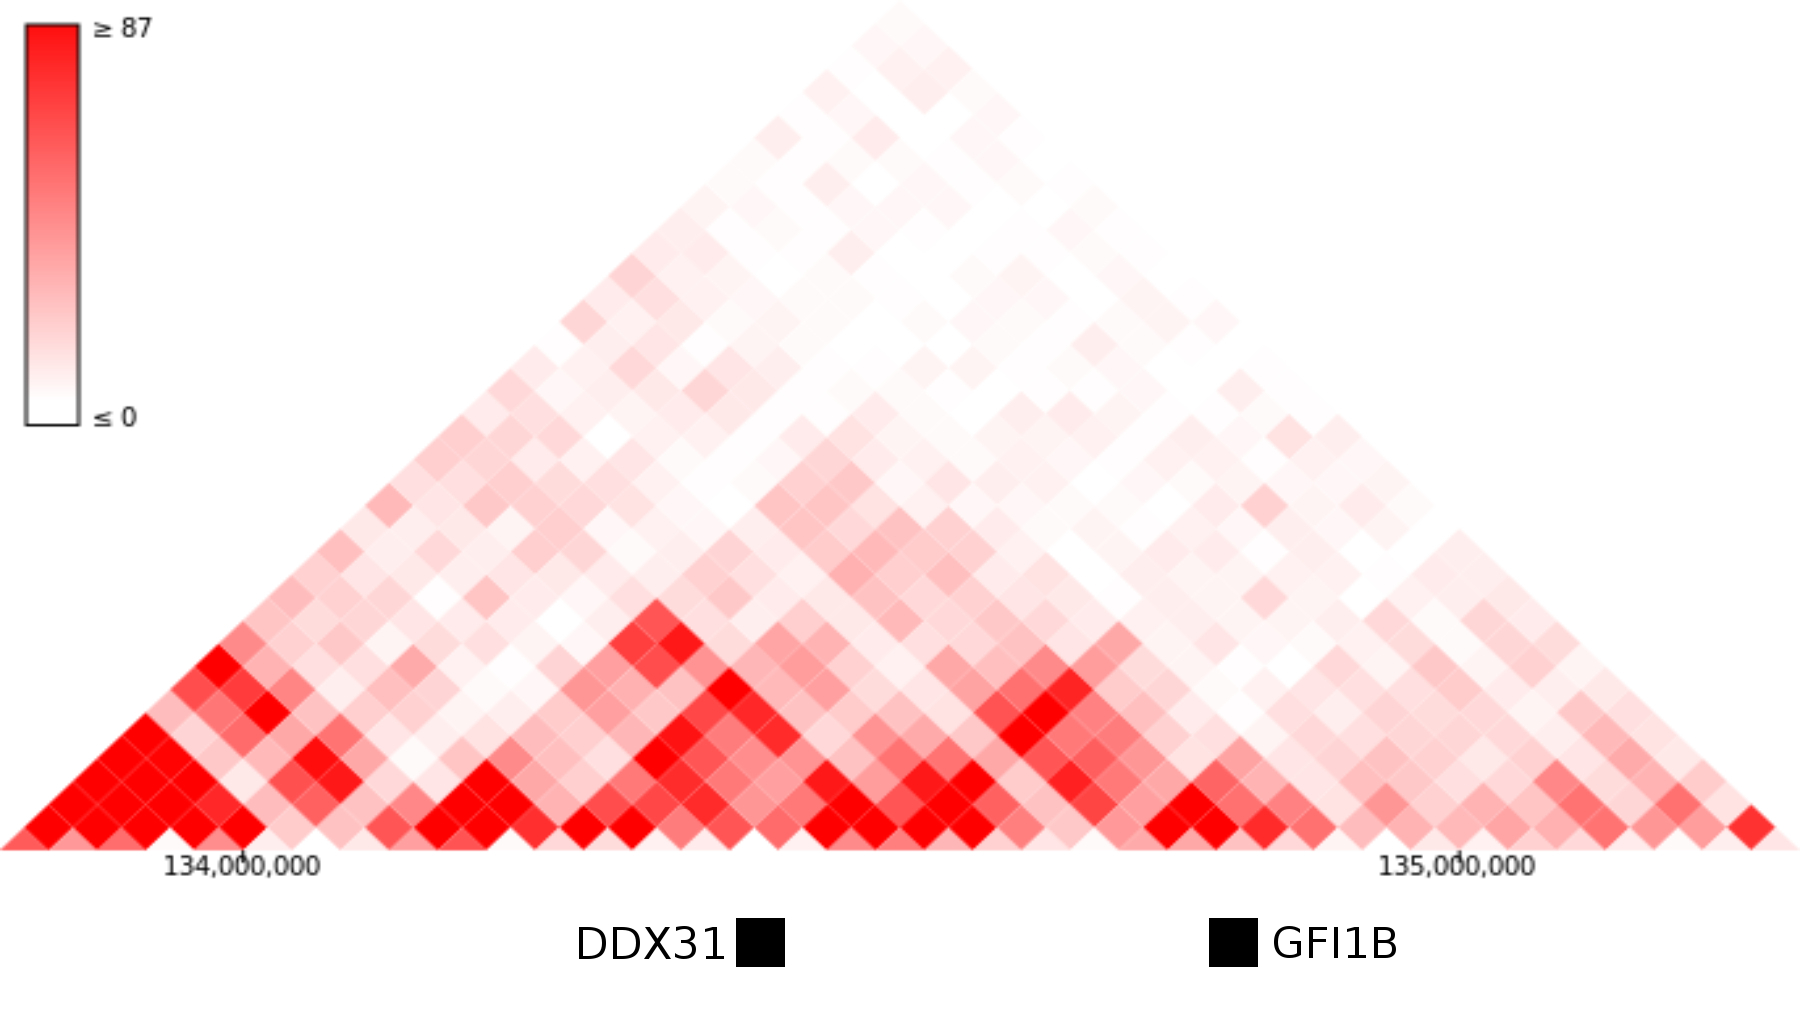 Hi-C data for the GFI1B locus from human ES cells.